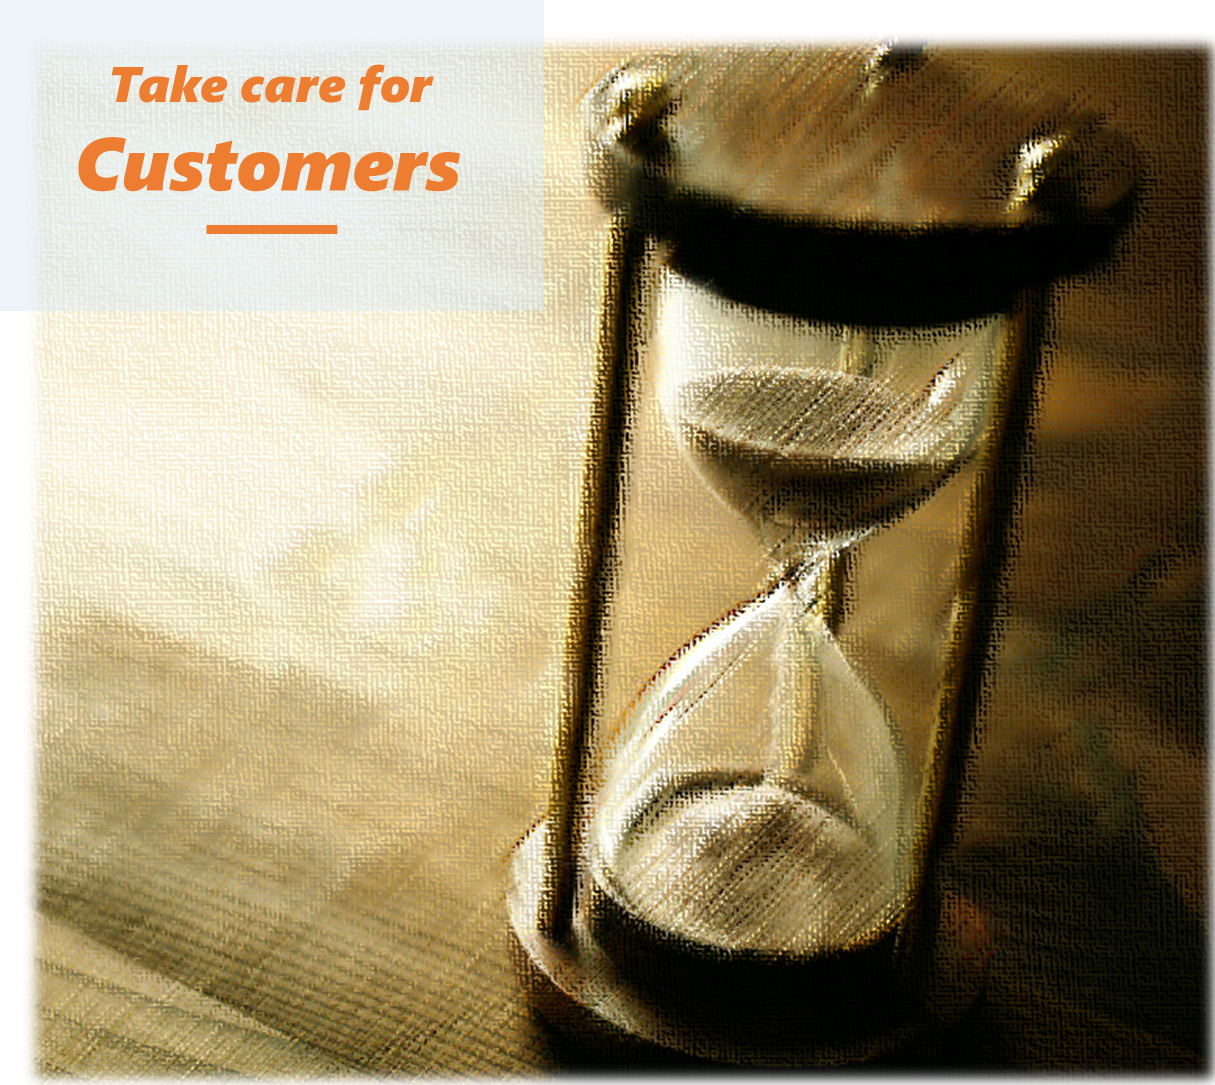 take care for customers